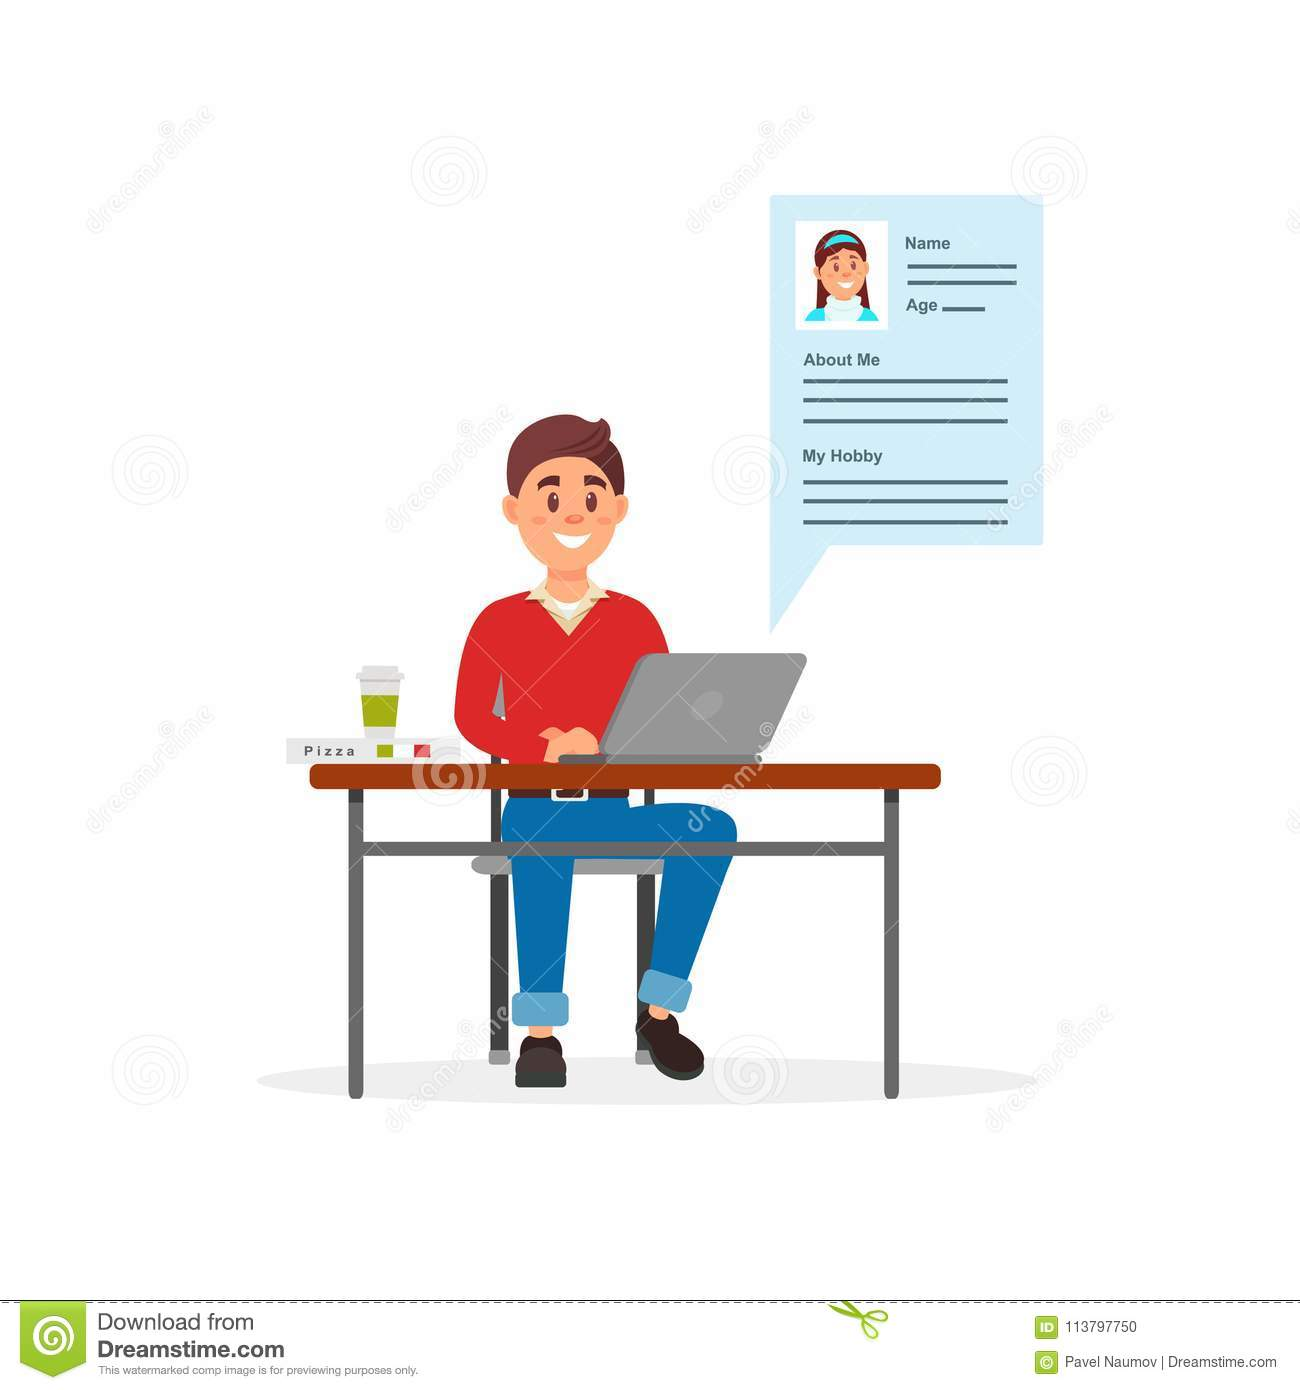 Young smiling man communicating on laptop computer using dating web site or app vector Illustration on a white